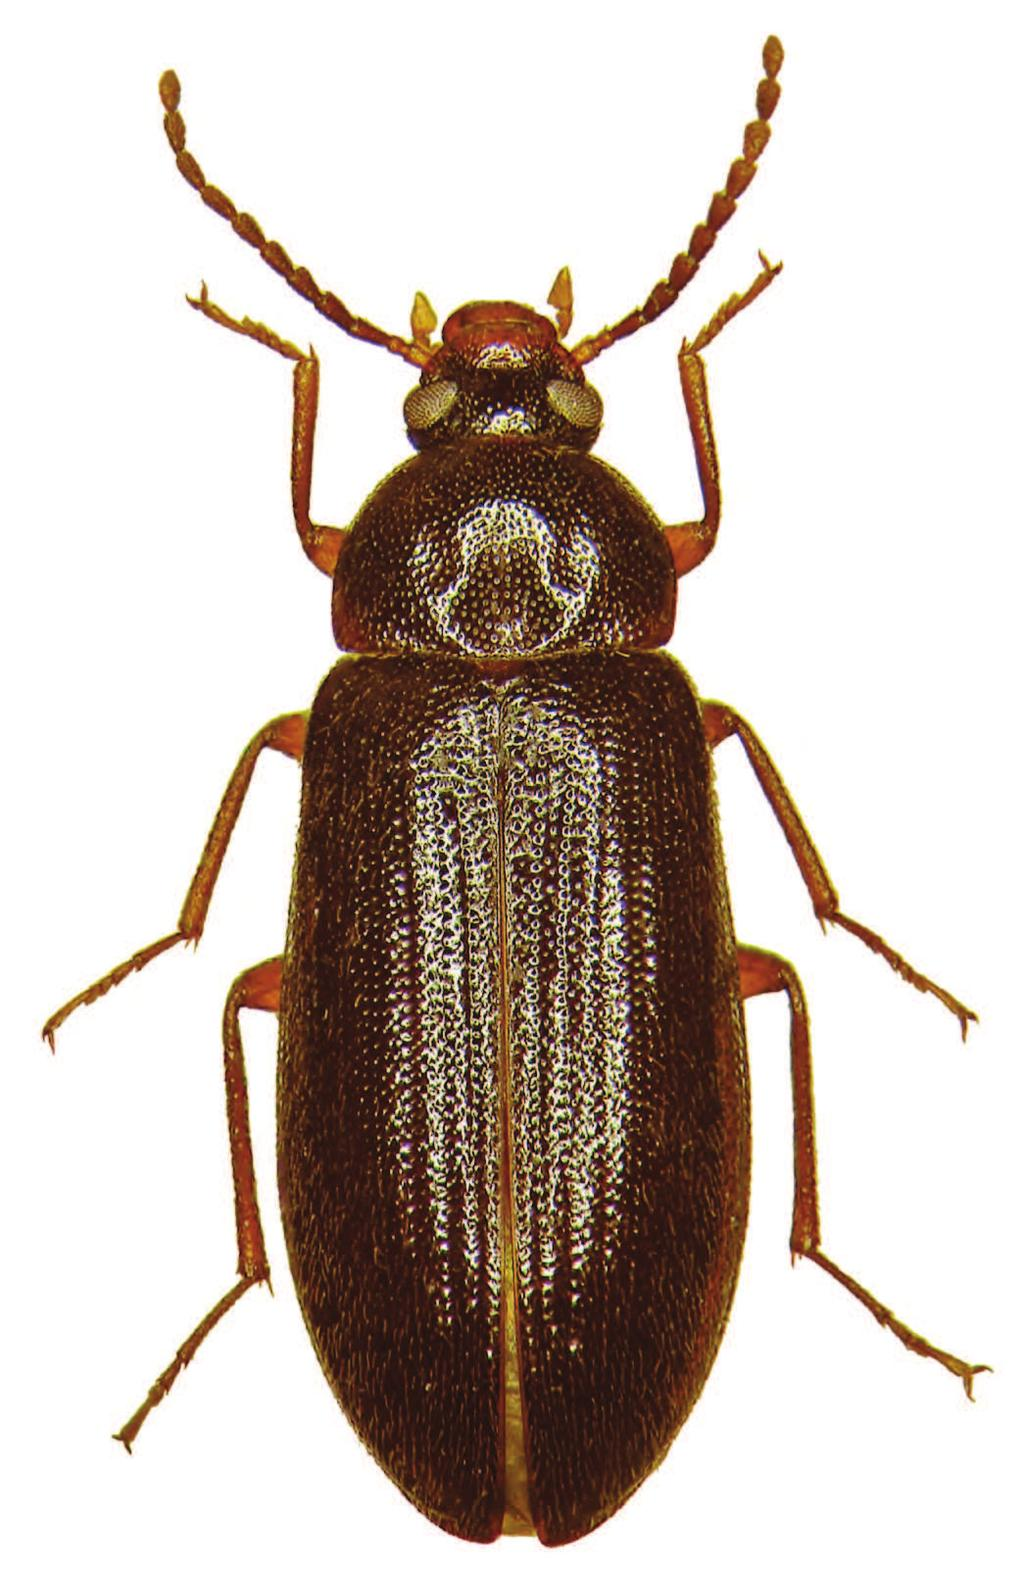 an attractant for numerous saproxylophagous beetles (Bouget and Brustel 2009).